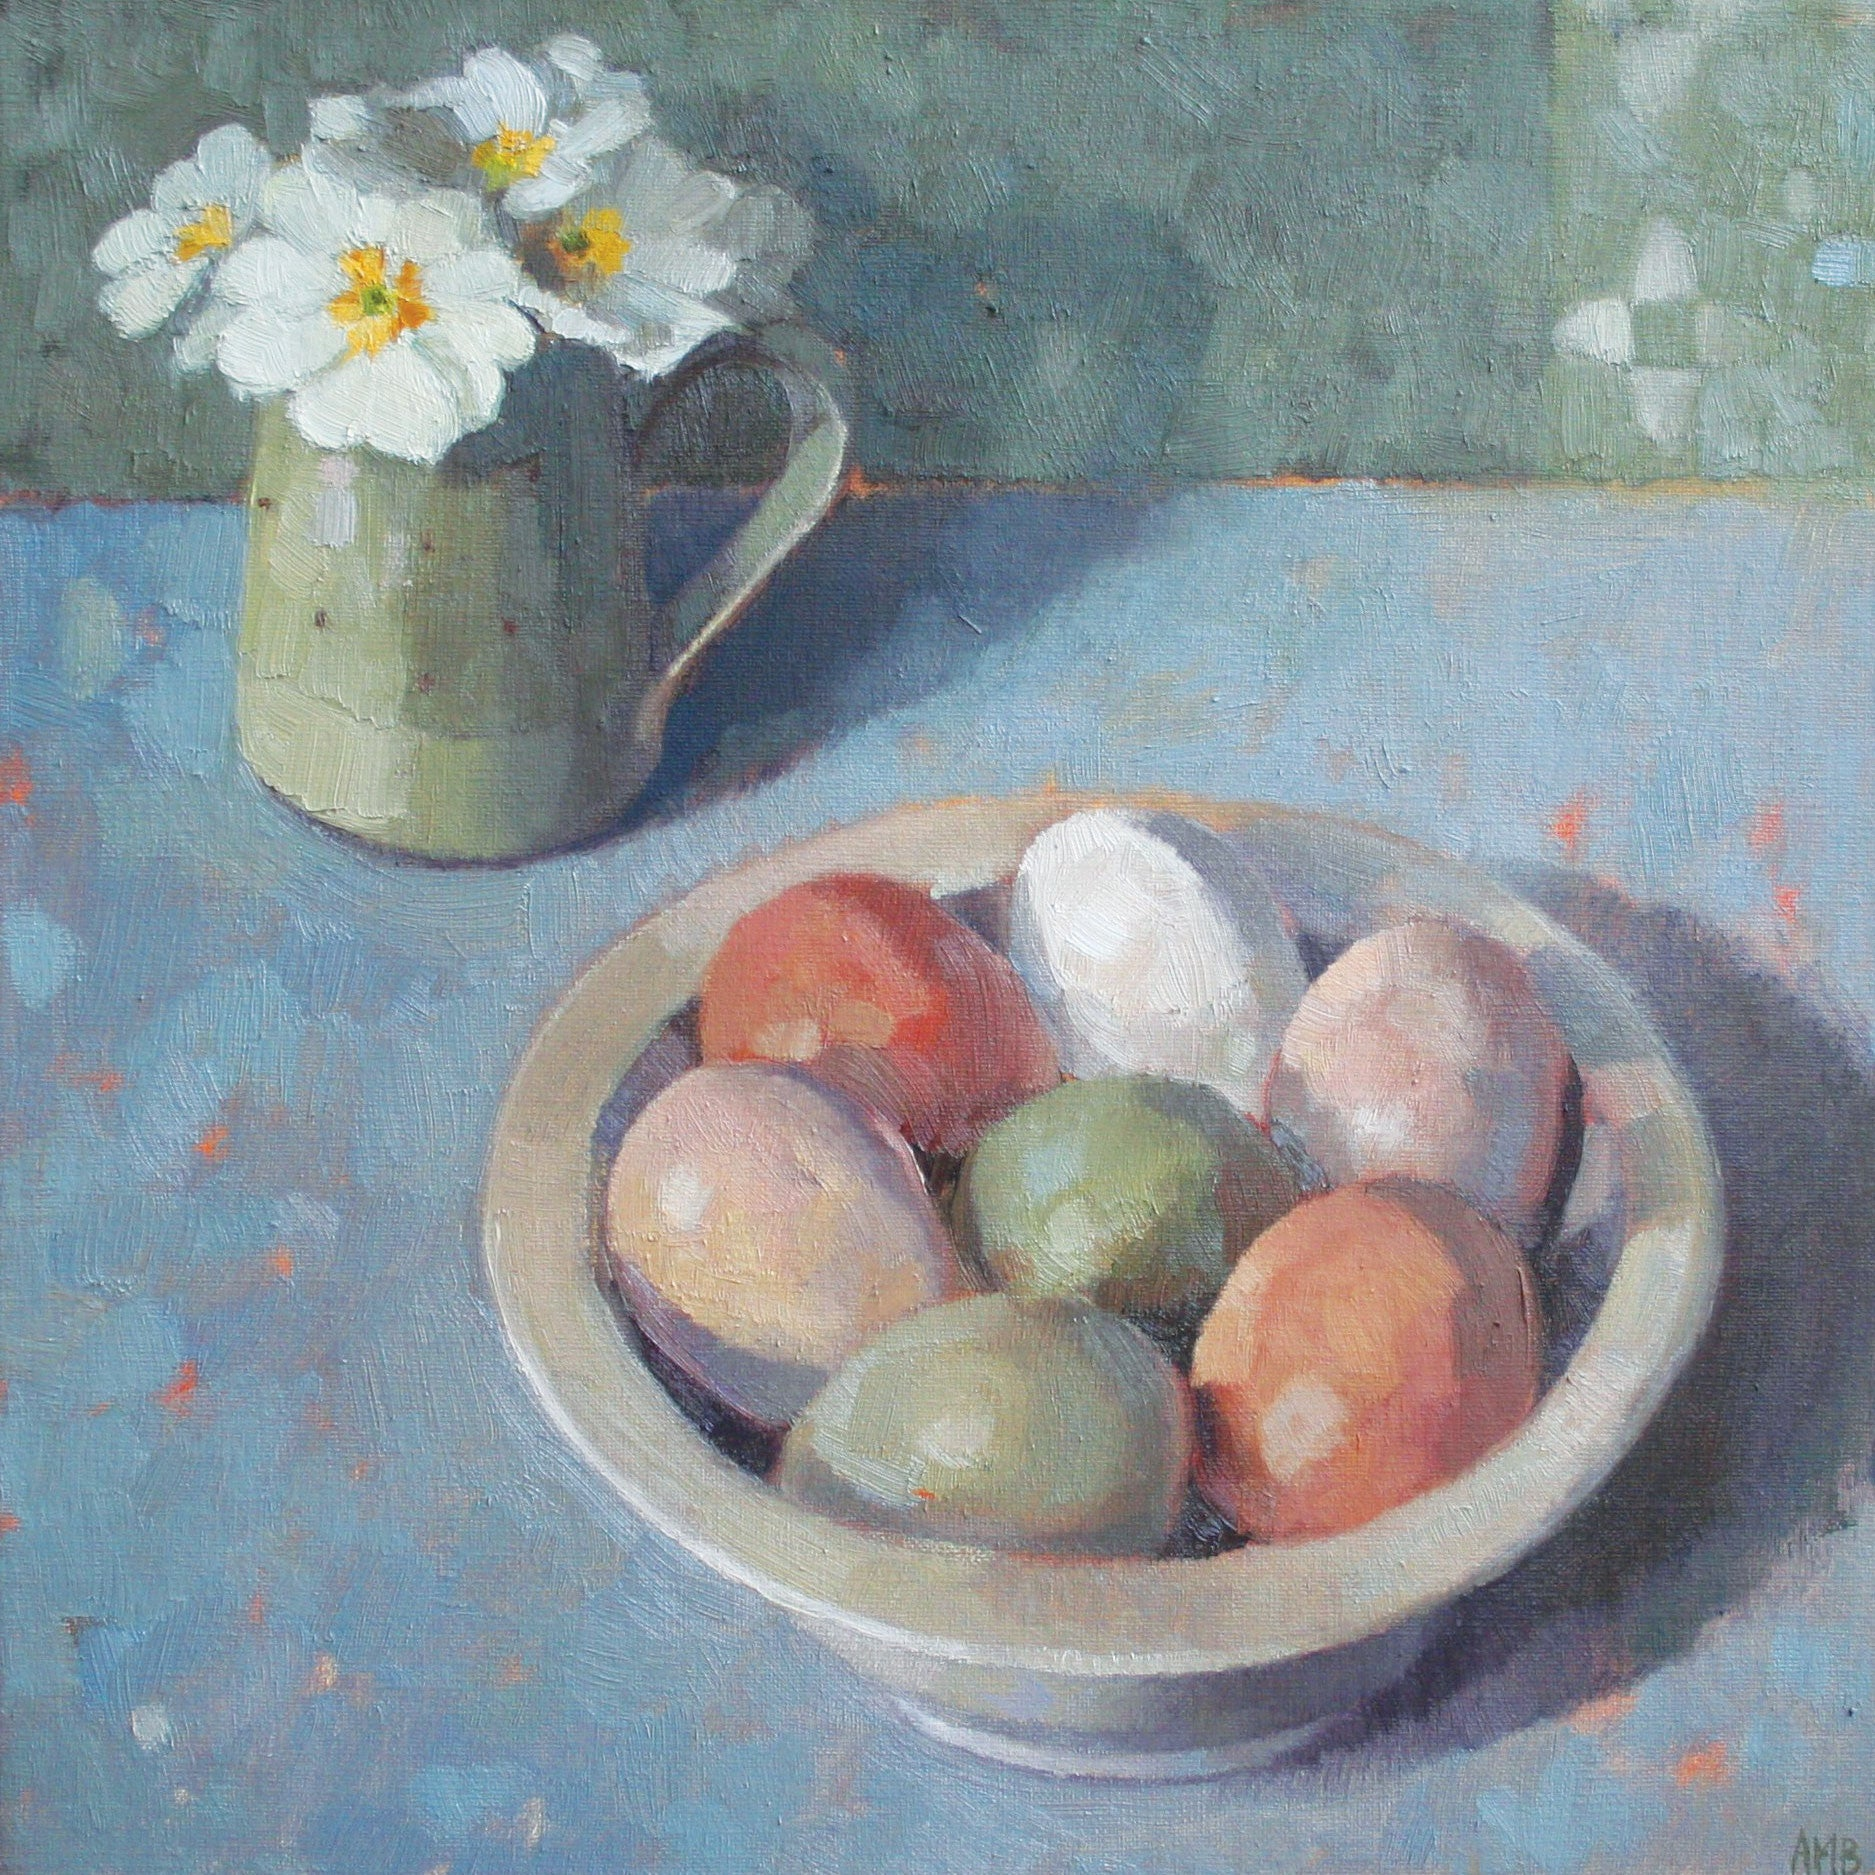 Bowl of Eggs by Anne-Marie Butlin, Fine Art Greeting Card, Oil on Canvas, Eggs in bowl and flowers